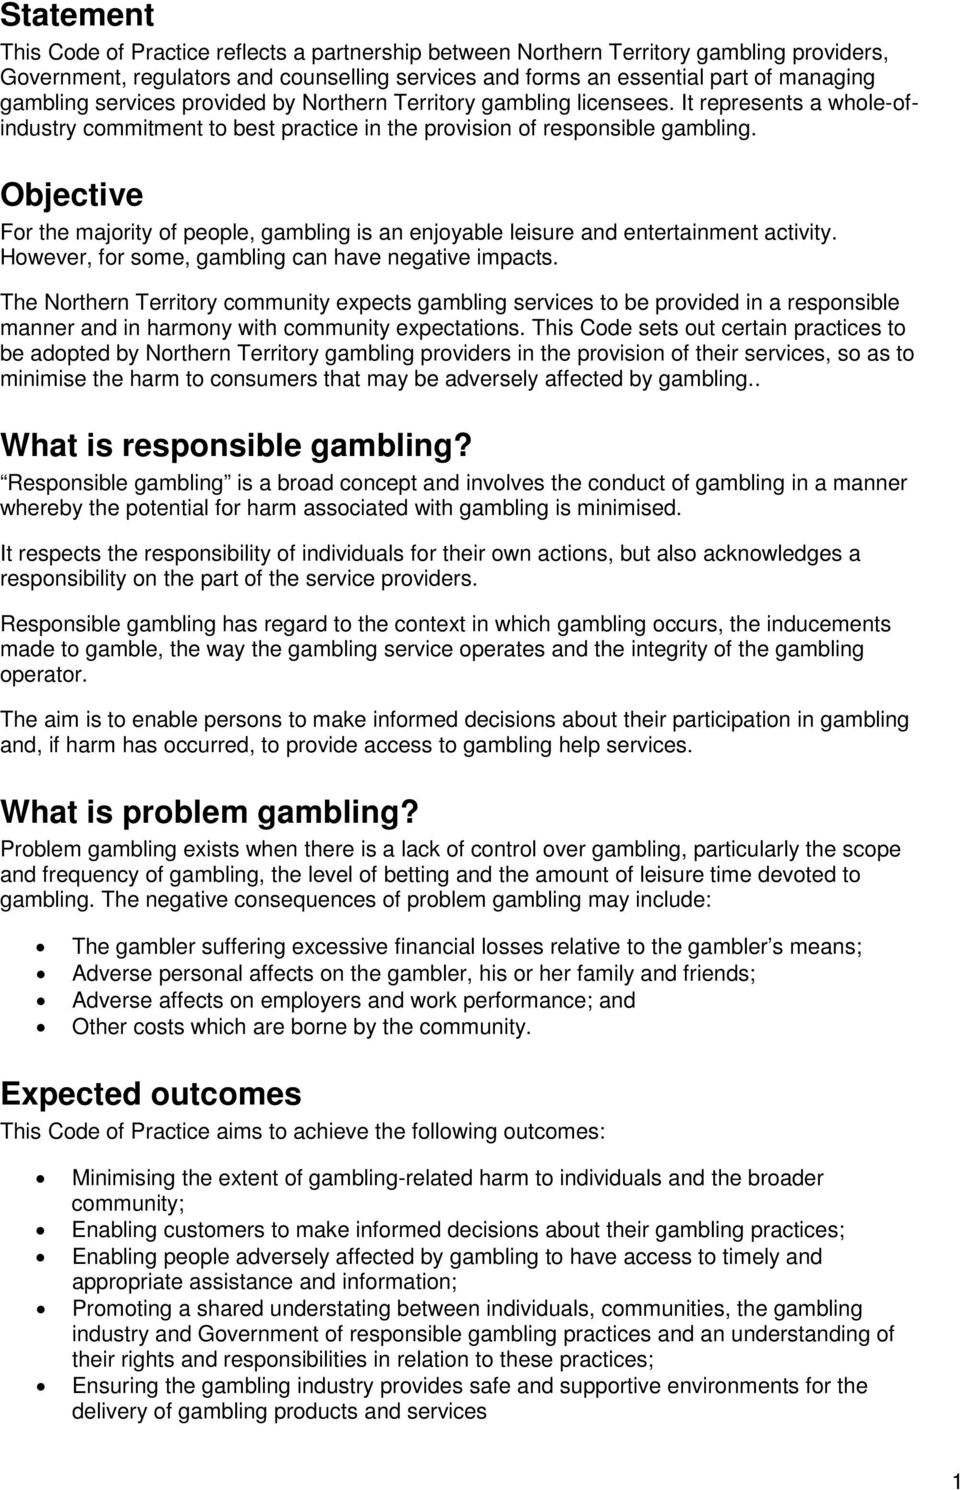 Objective For the majority of people, gambling is an enjoyable leisure and entertainment activity. However, for some, gambling can have negative impacts.